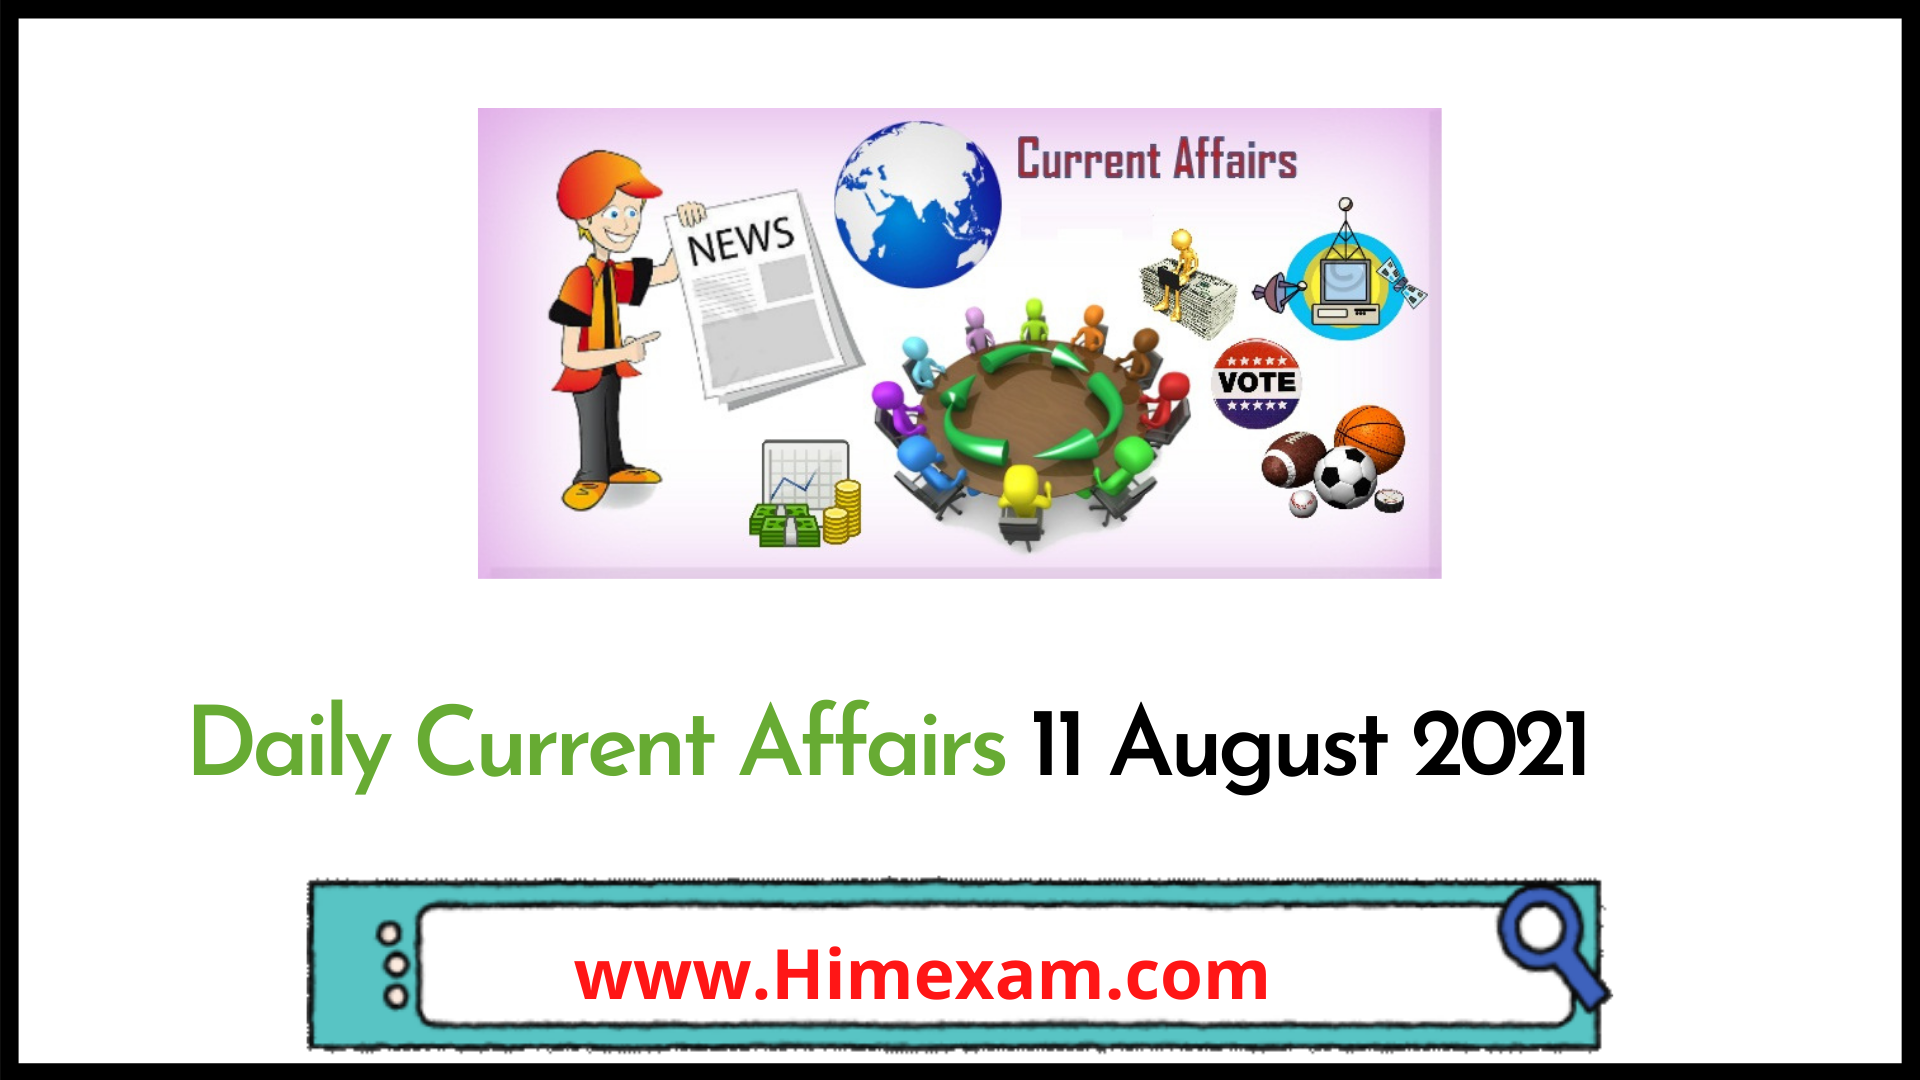 Daily Current Affairs 11 August 2021